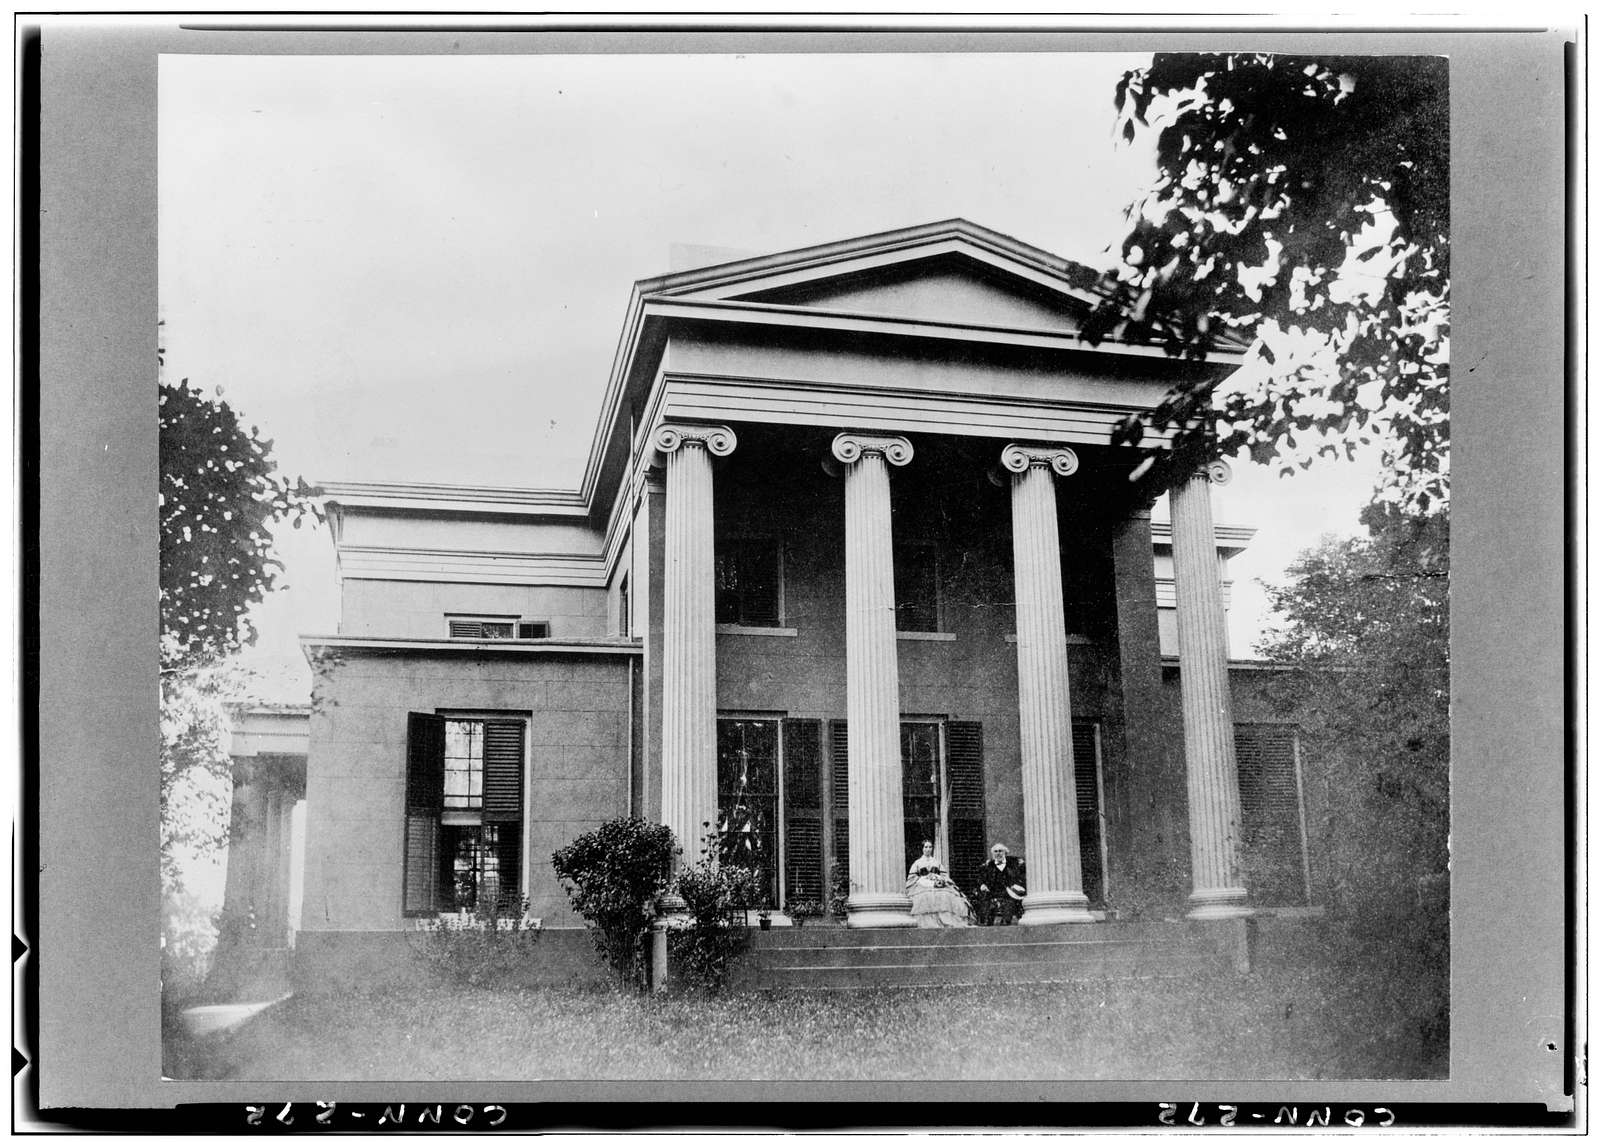 Skinner-Trowbridge House, 46 Hillhouse Avenue, New Haven, New Haven County, CT